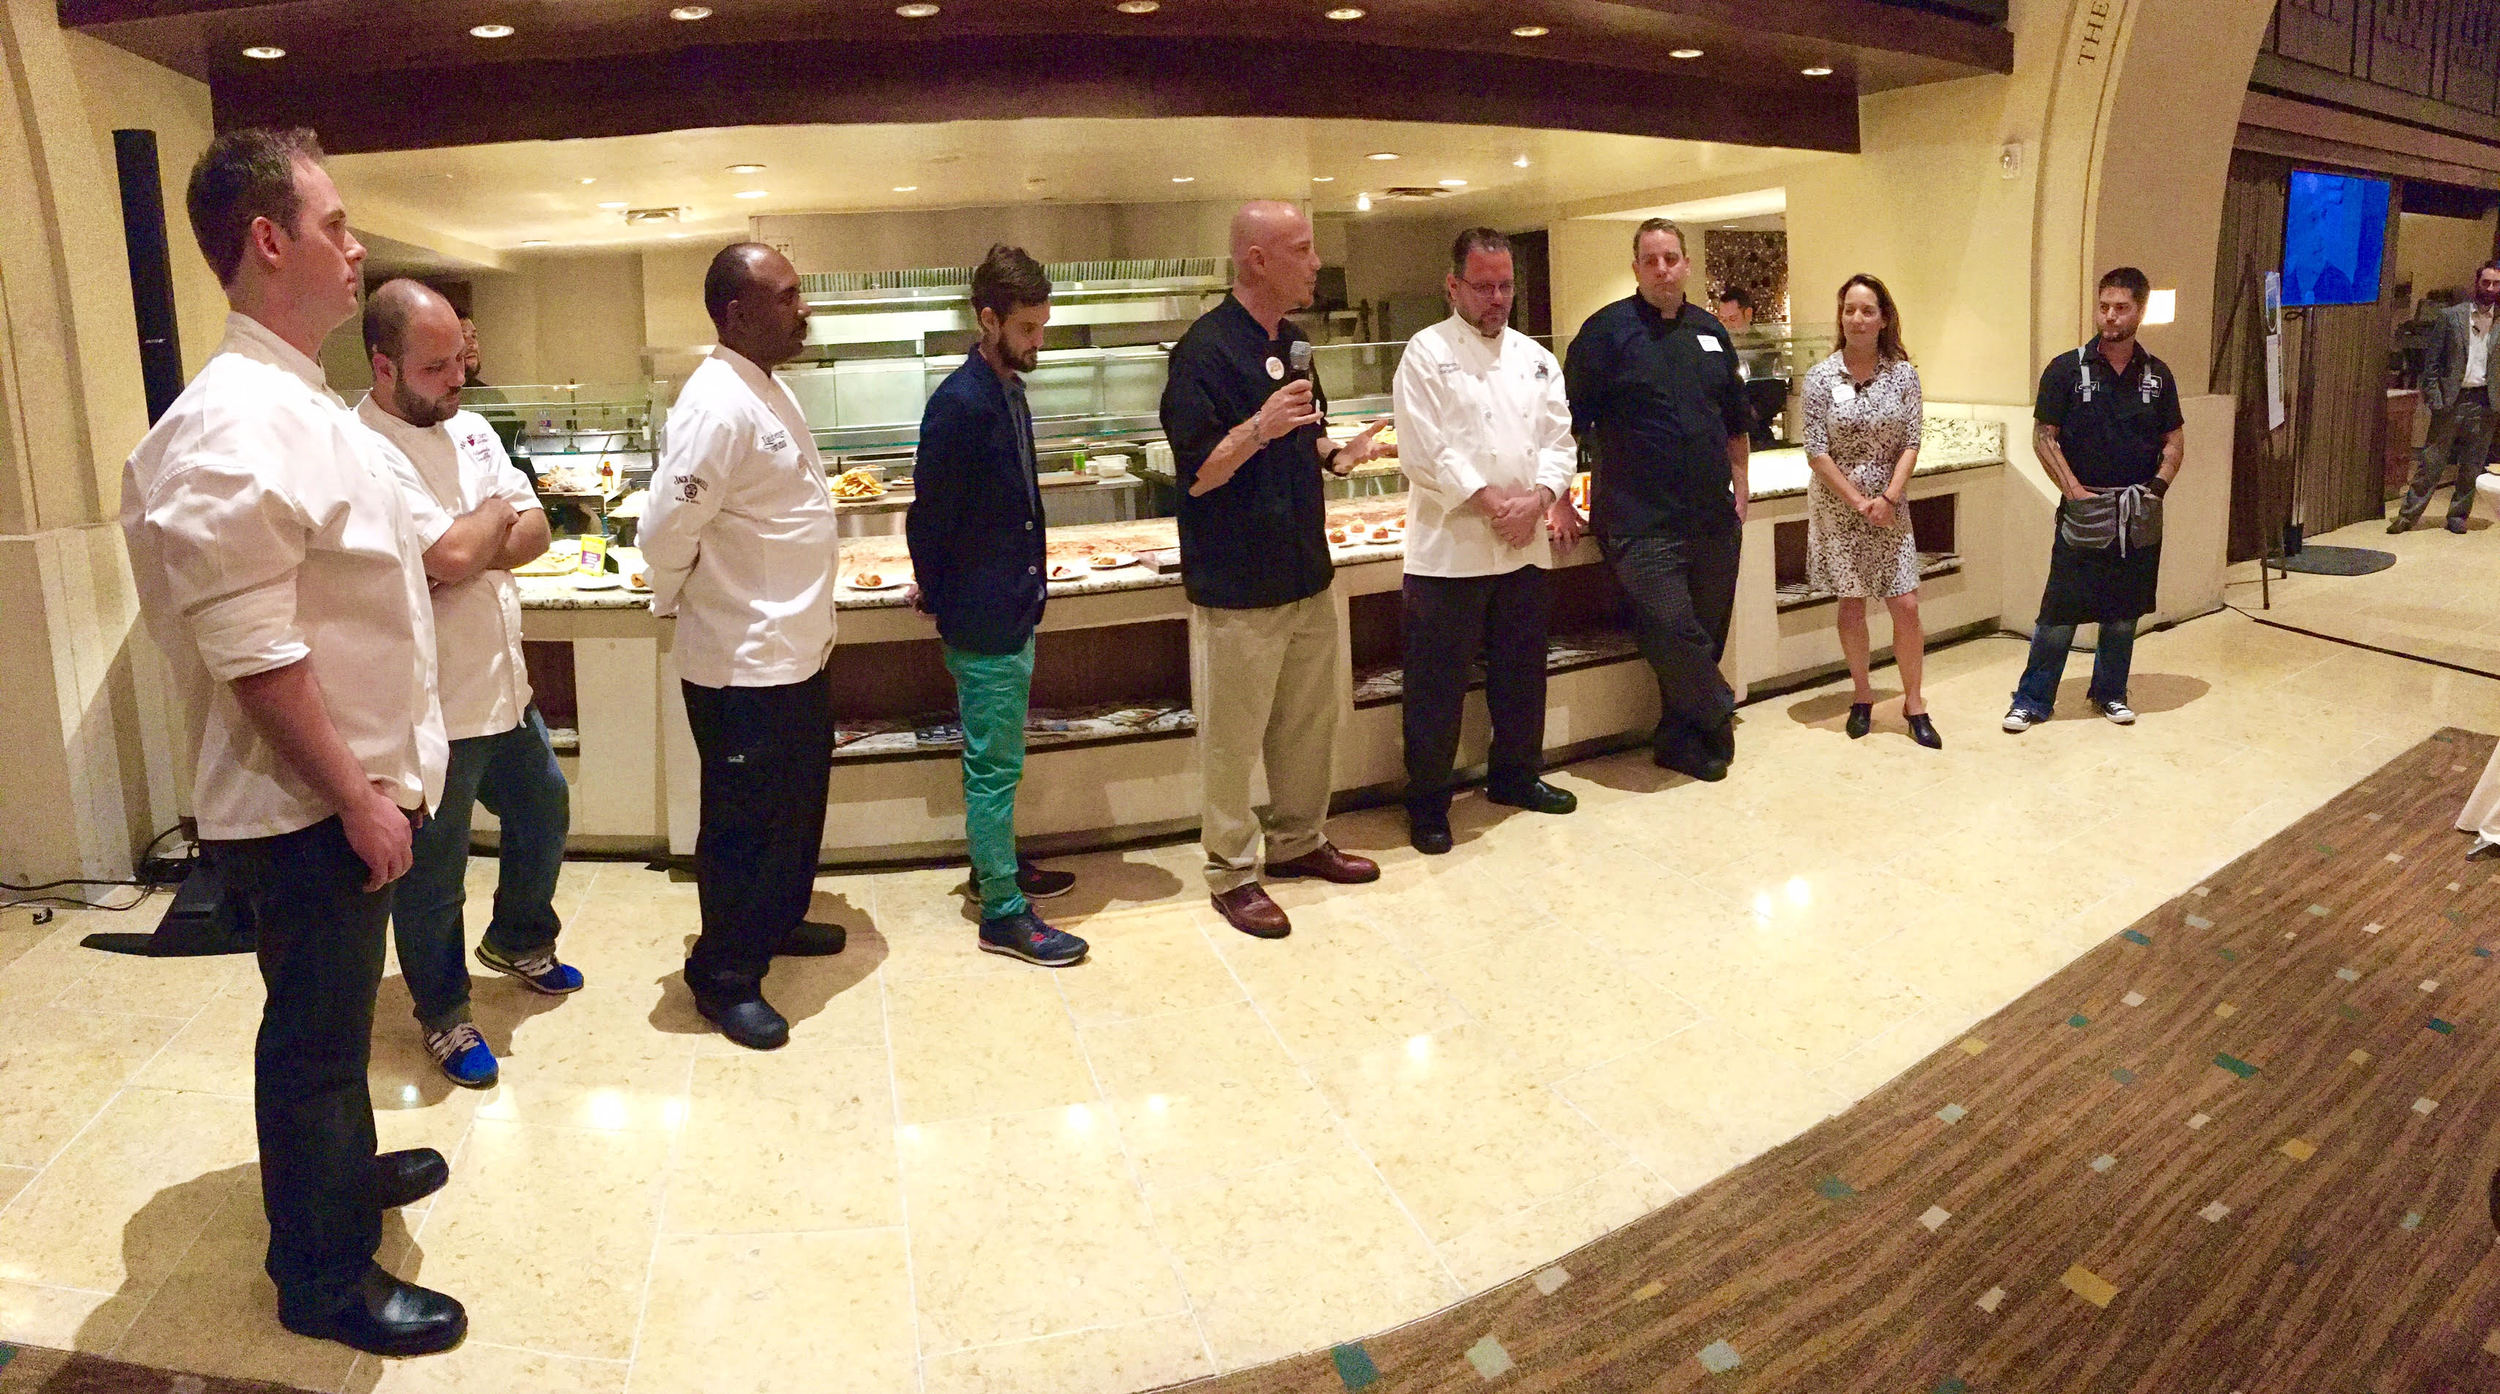 Louisiana Top Chefs represented from left: The North Shore, Shreveport, Lake Charles, Lafayette, Alexandria, New Orleans, Lake Charles, and Baton Rouge.